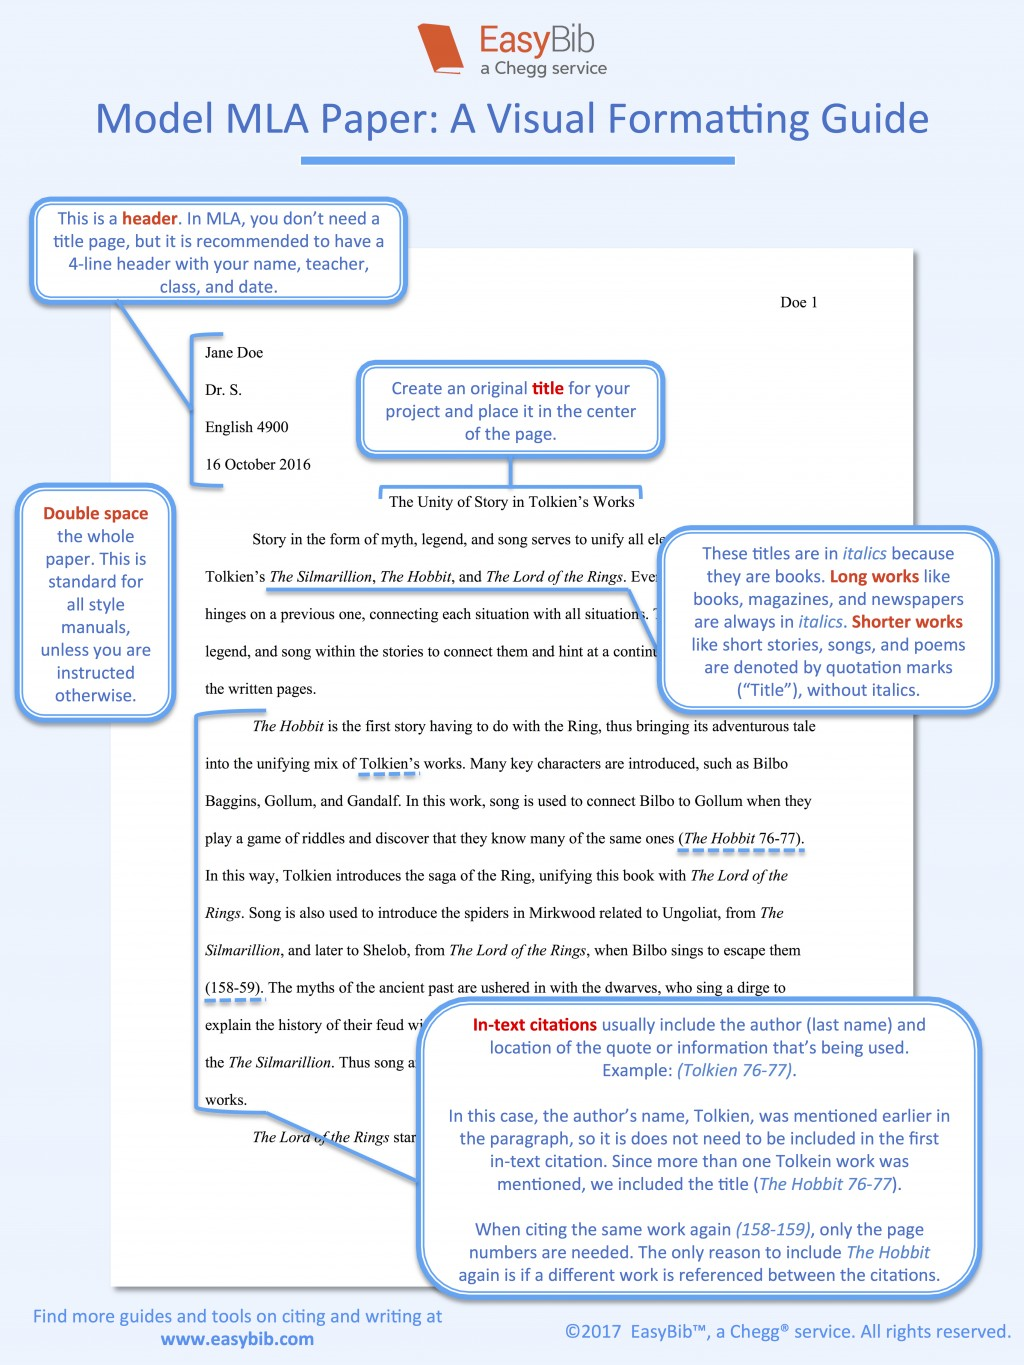 001 Citation Rules For Research Papers Model Mla Paper Awful Large